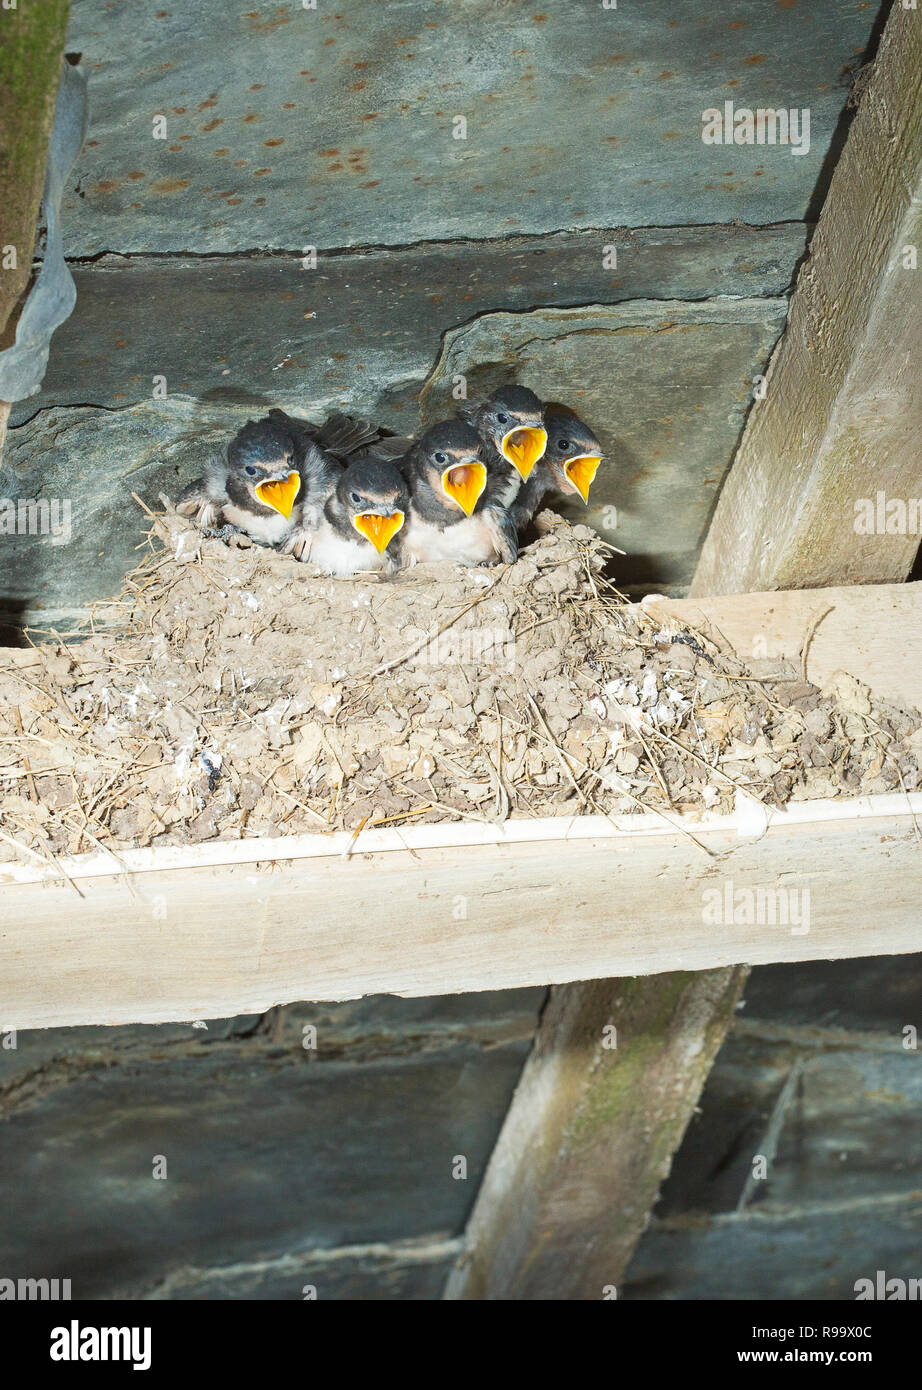 A nest full of baby swallows with their beaks wide open - Stock Image